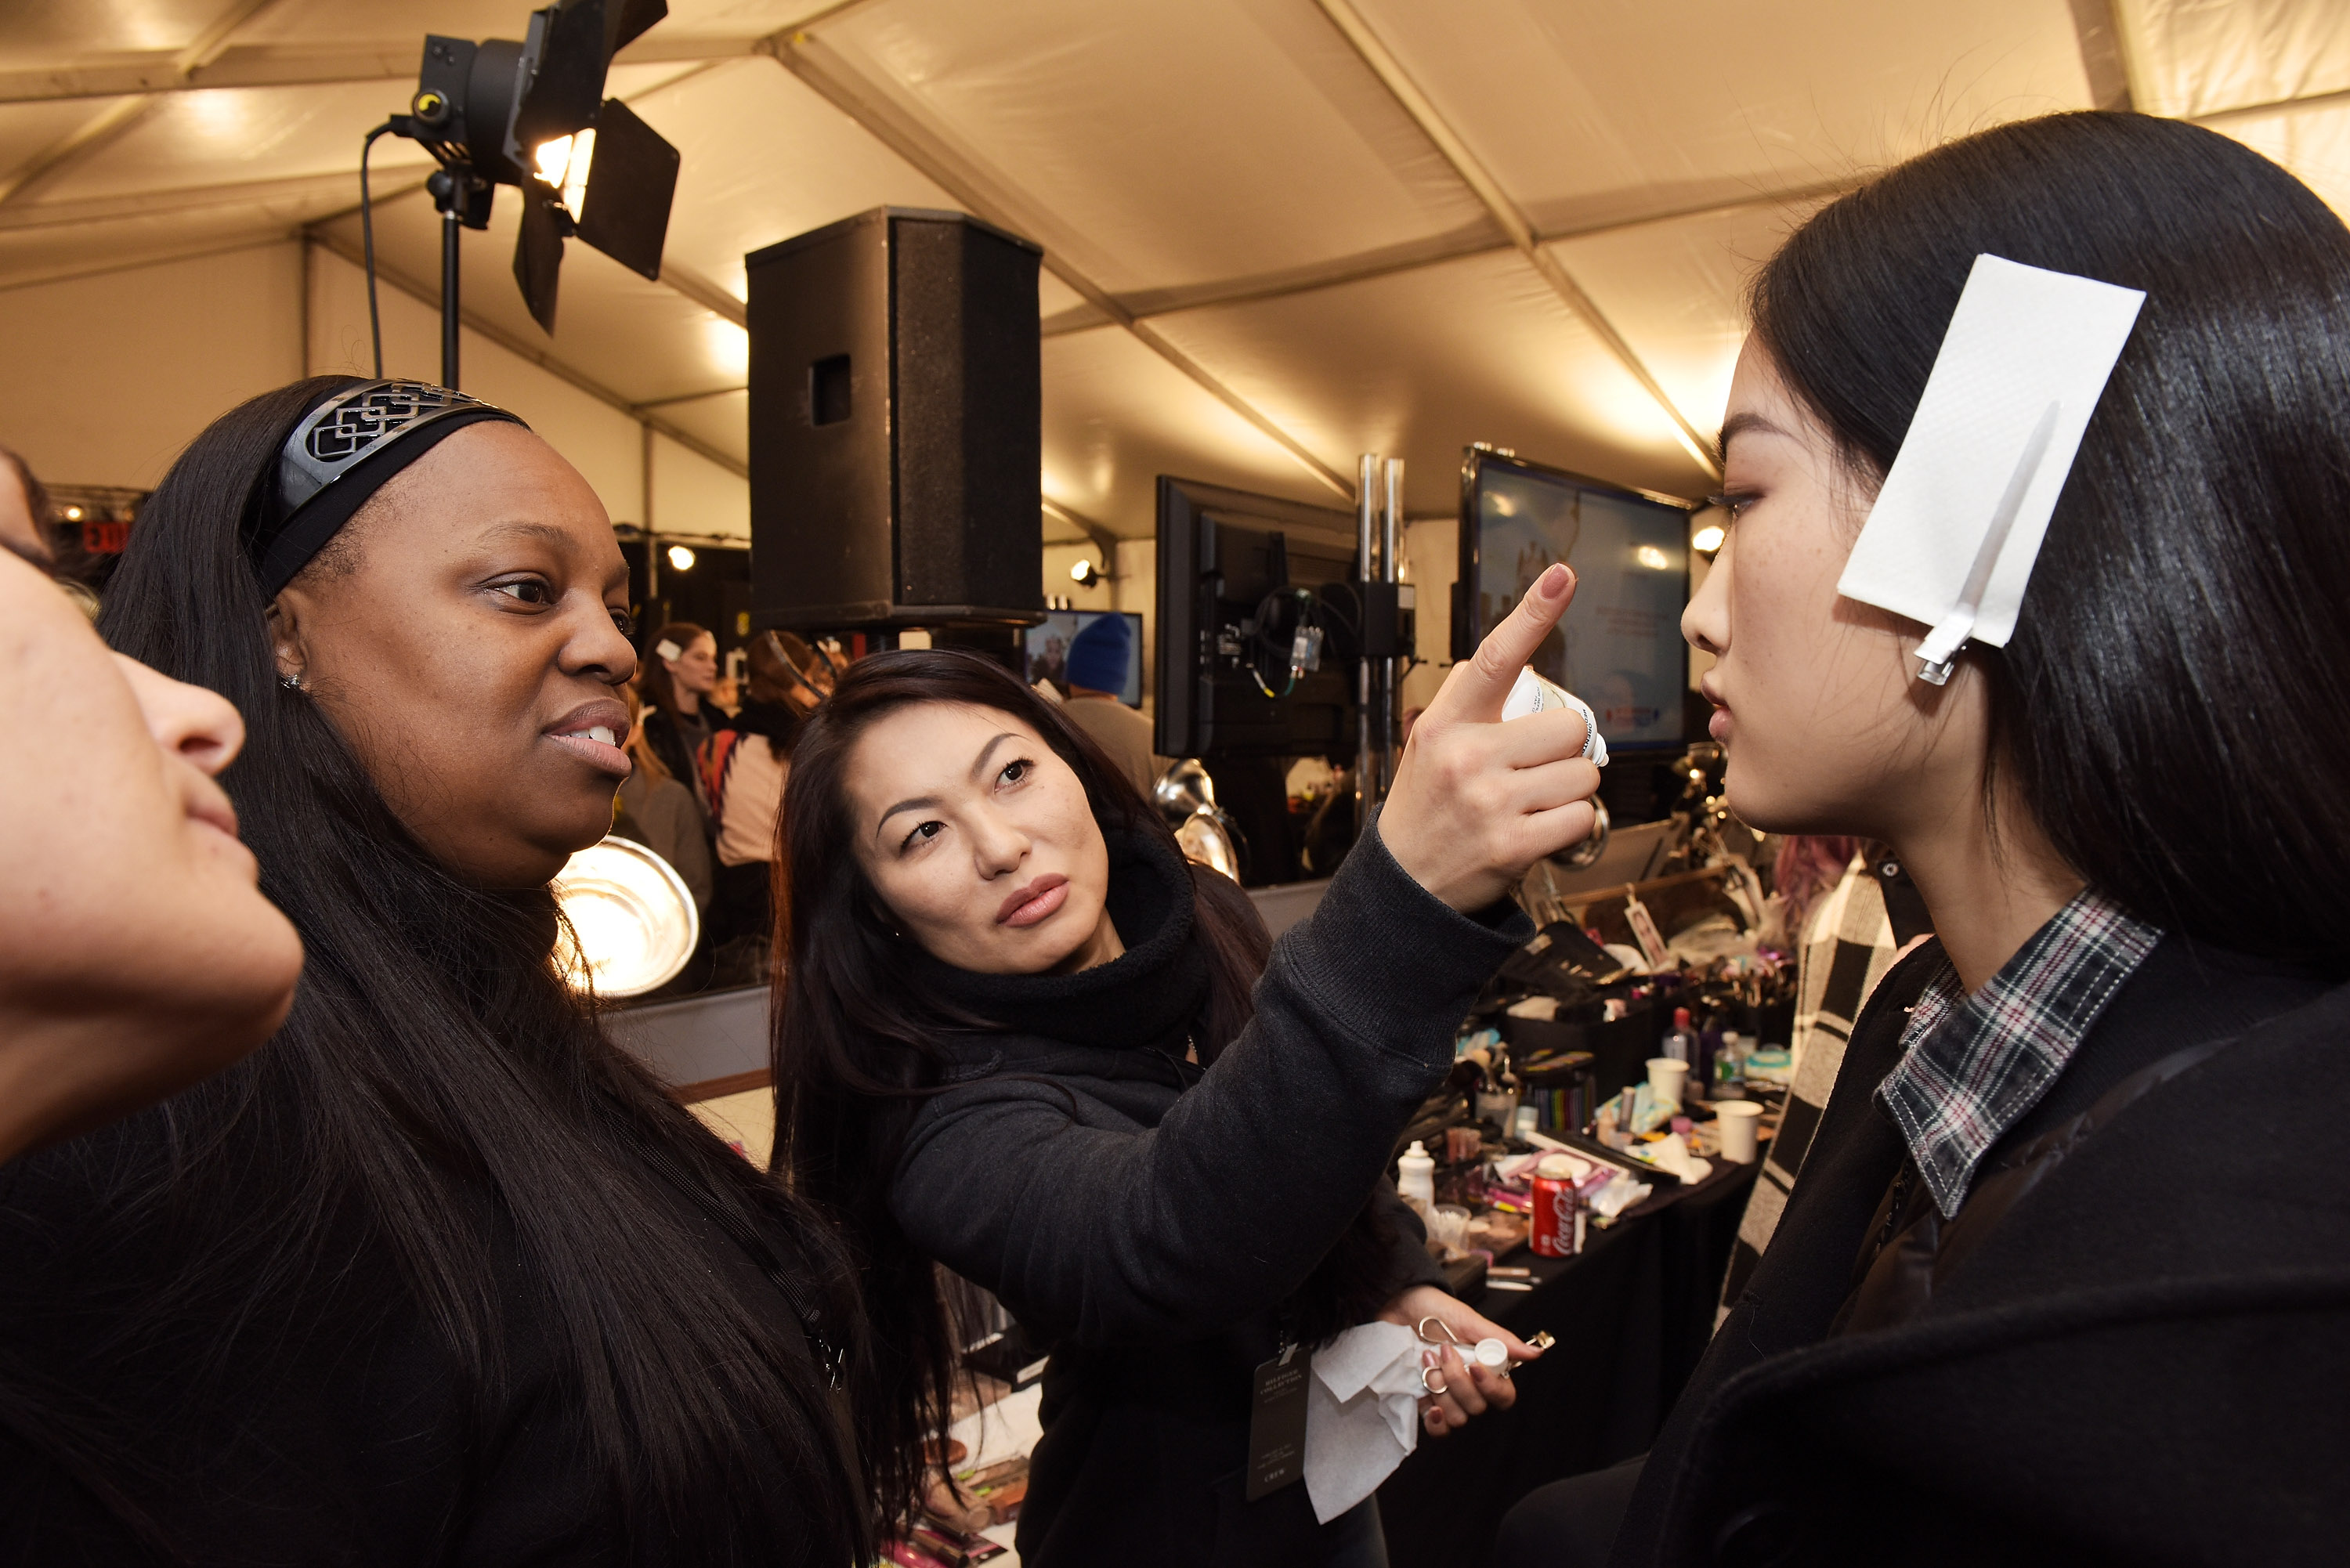 Pat Mcgrath Planning Full Makeup Line In 2016 But Gold 001 Is Available This Week